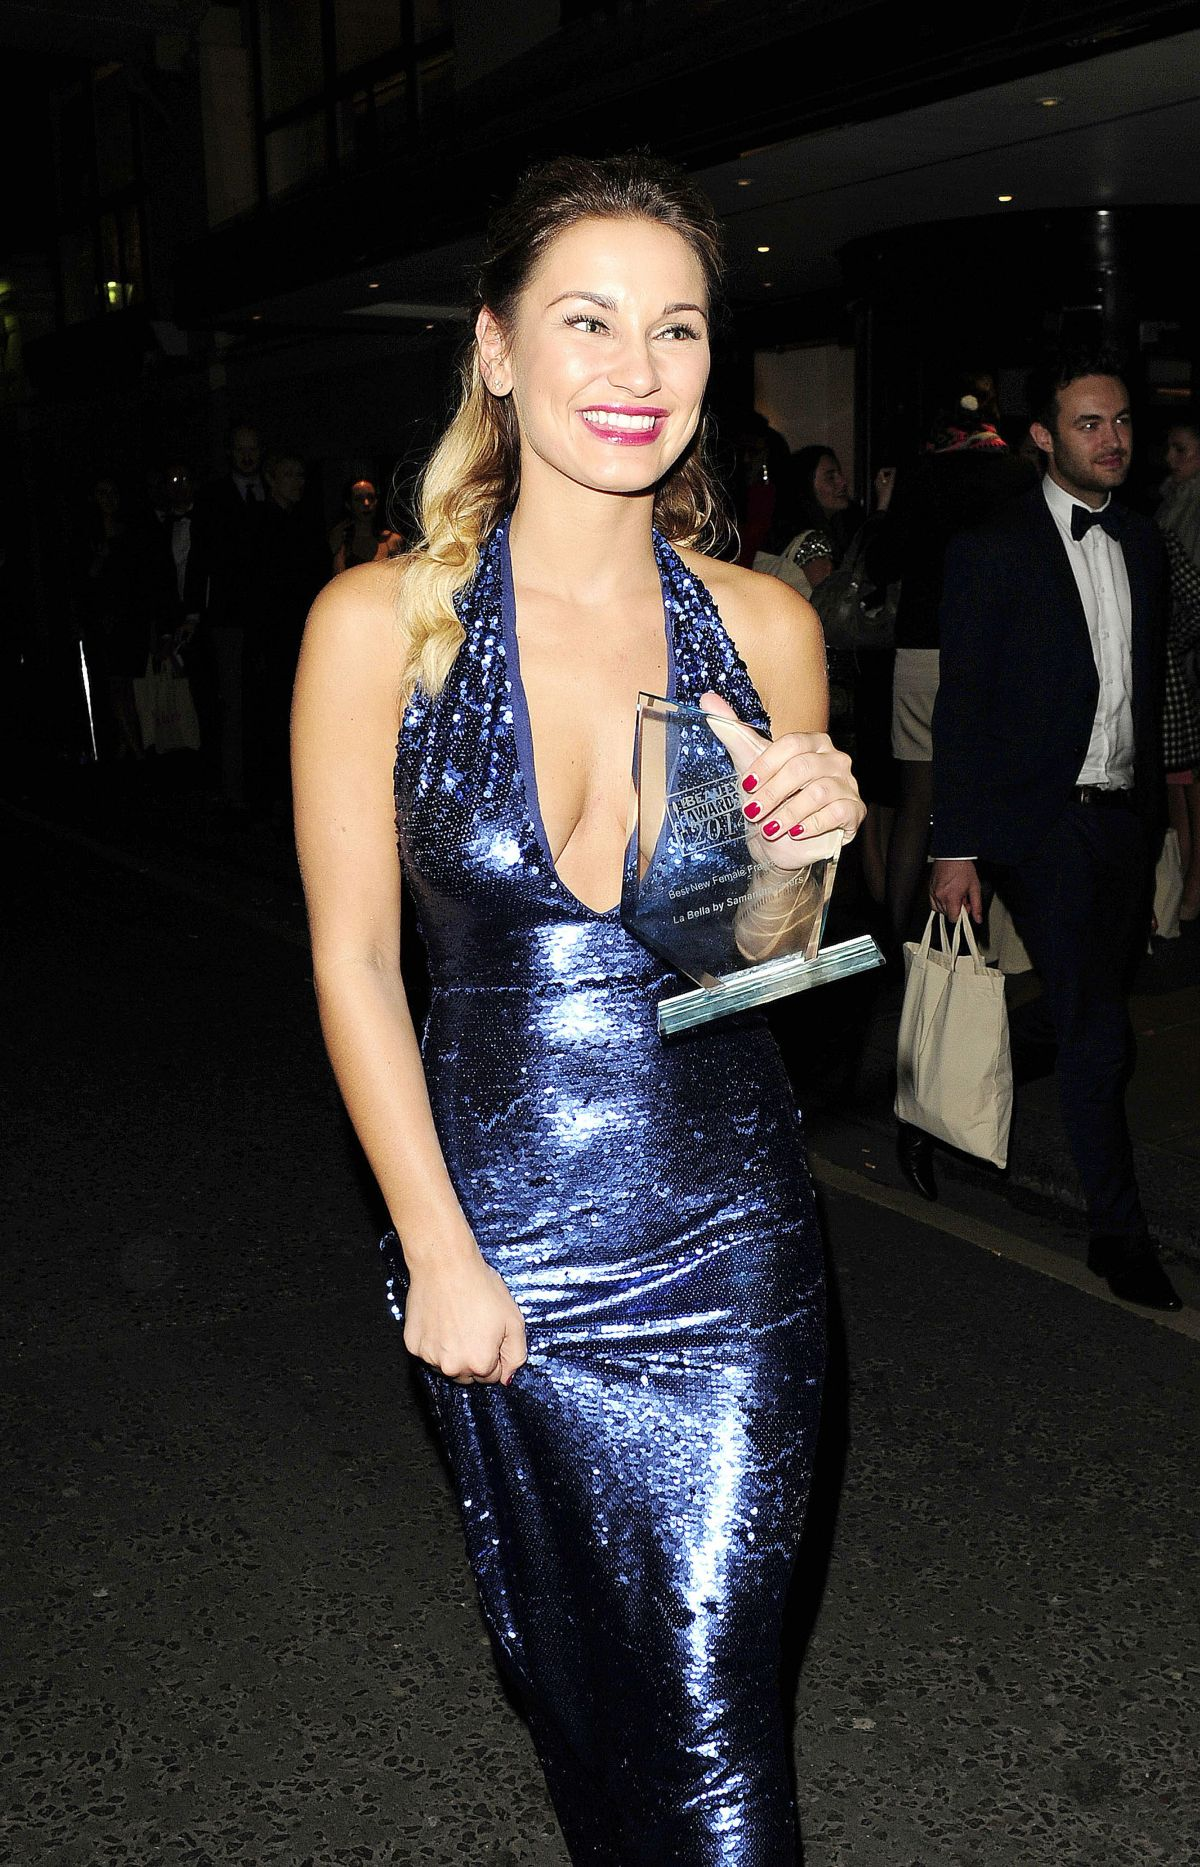 SAM FAIERS at Pure Beauty Awards in London